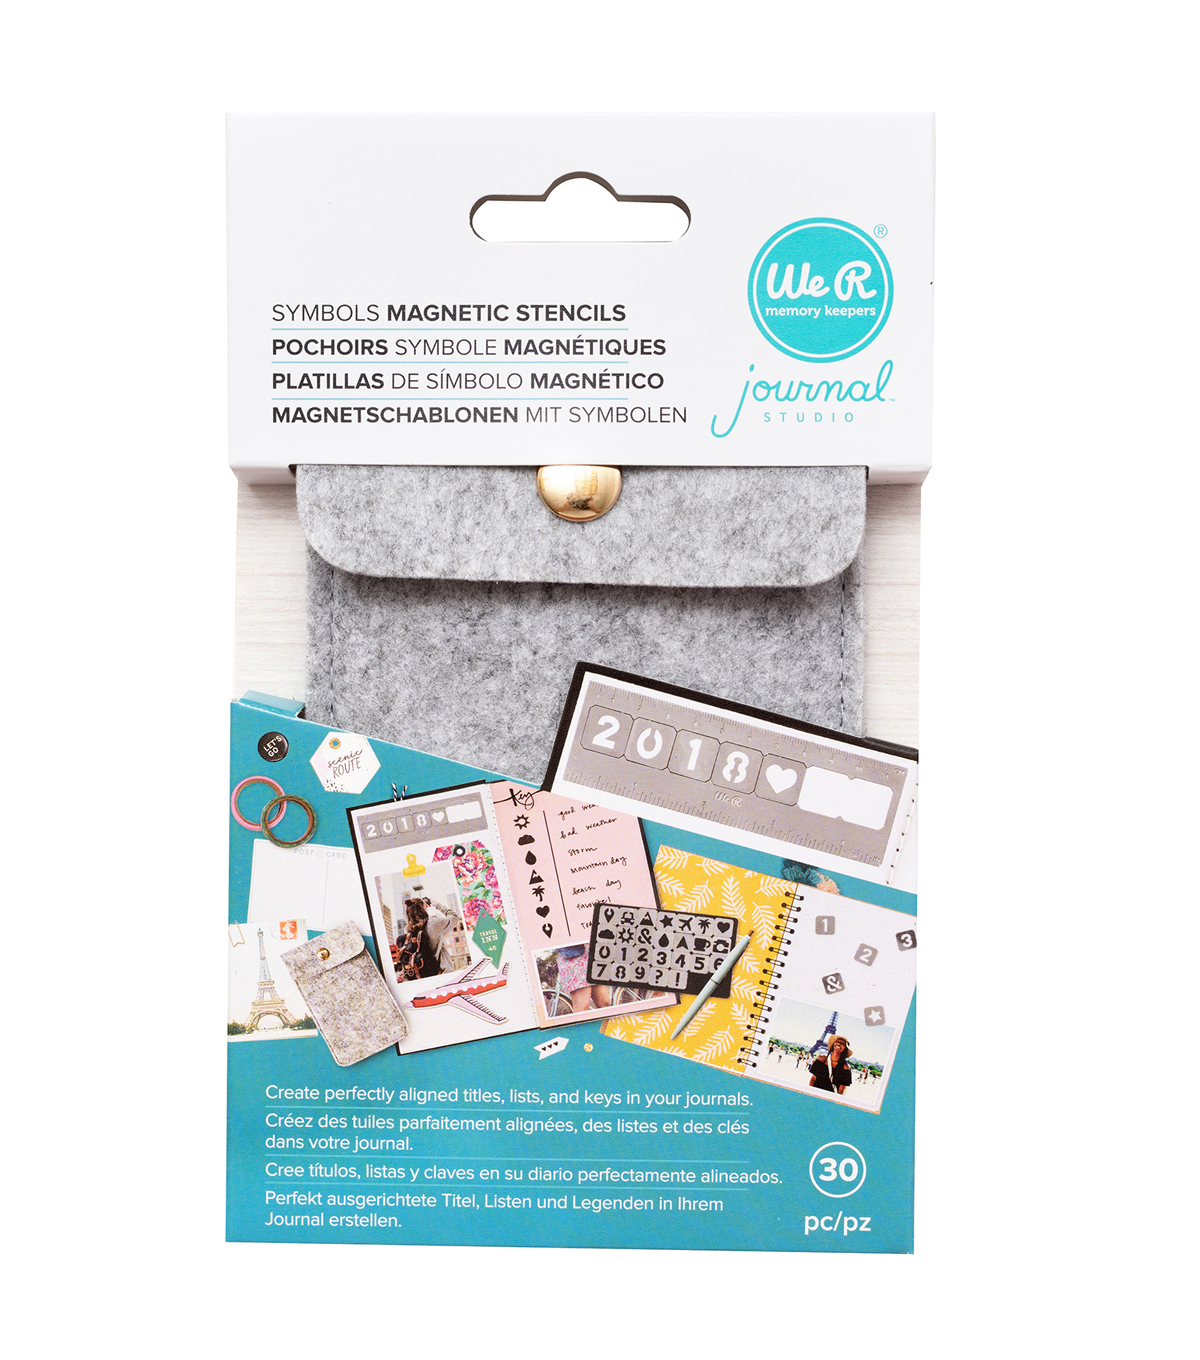 We R Memory Keepers Journal Studio Magnetic Stencil Kit-Symbols